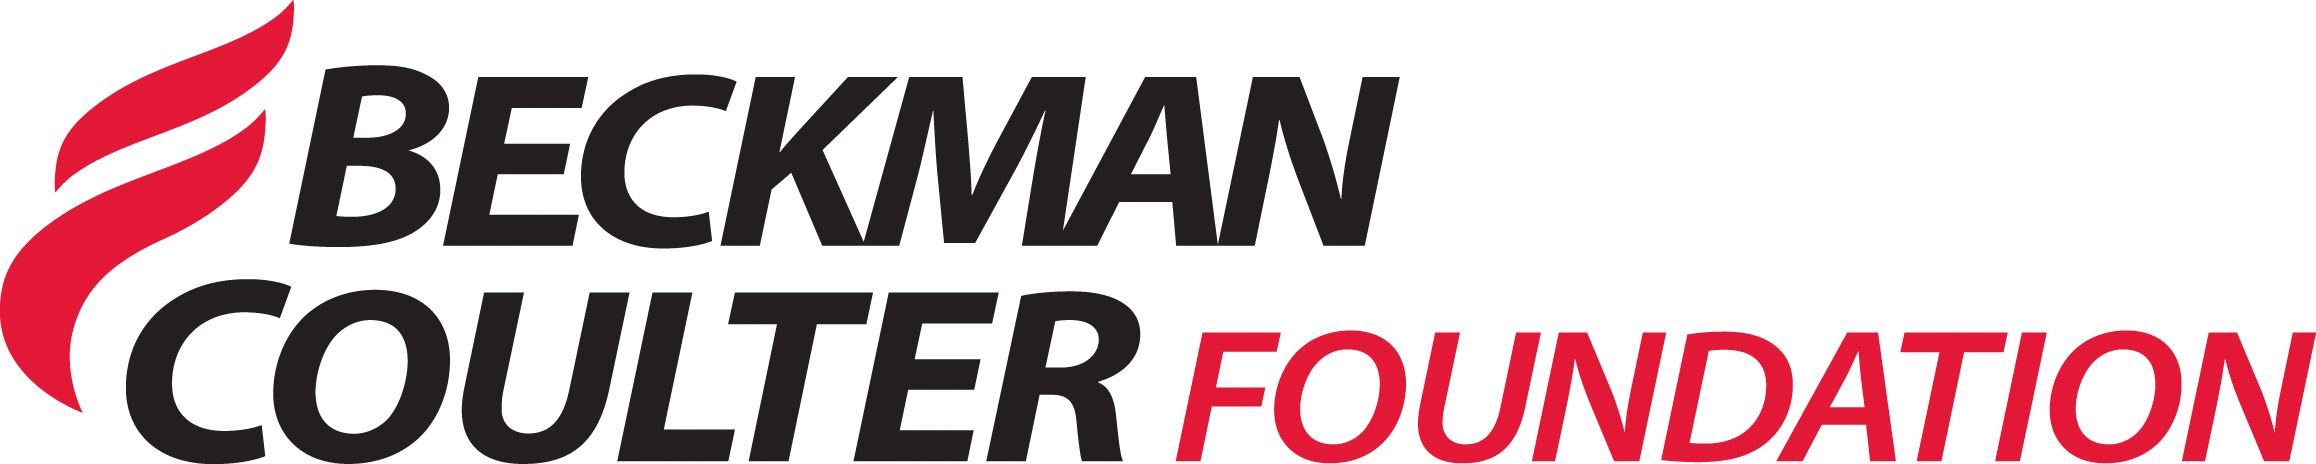 Beckman Coulter Foundation - Bike MS Partner